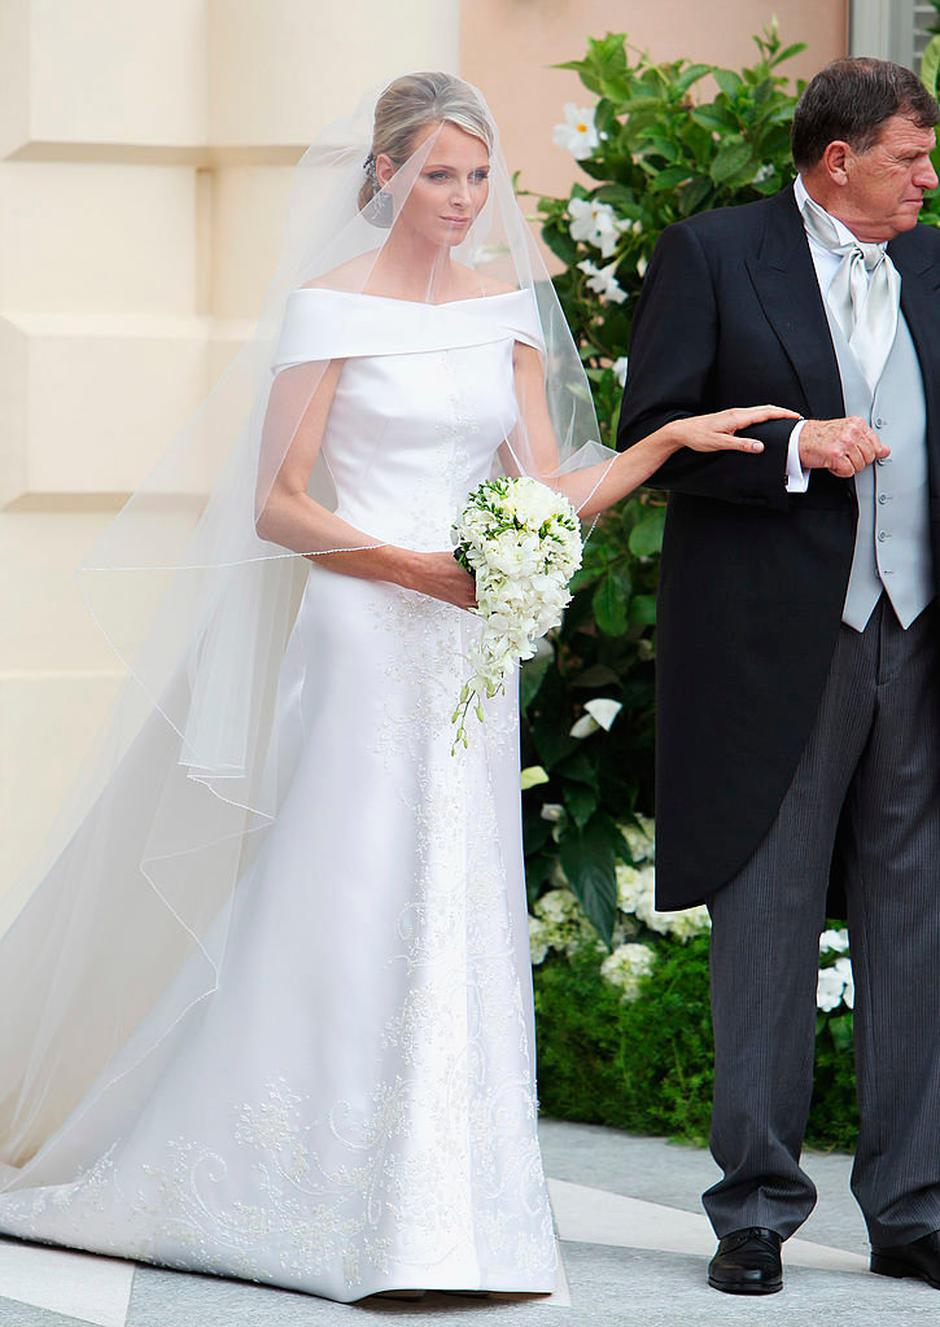 Fullsize Of Royal Wedding Dress